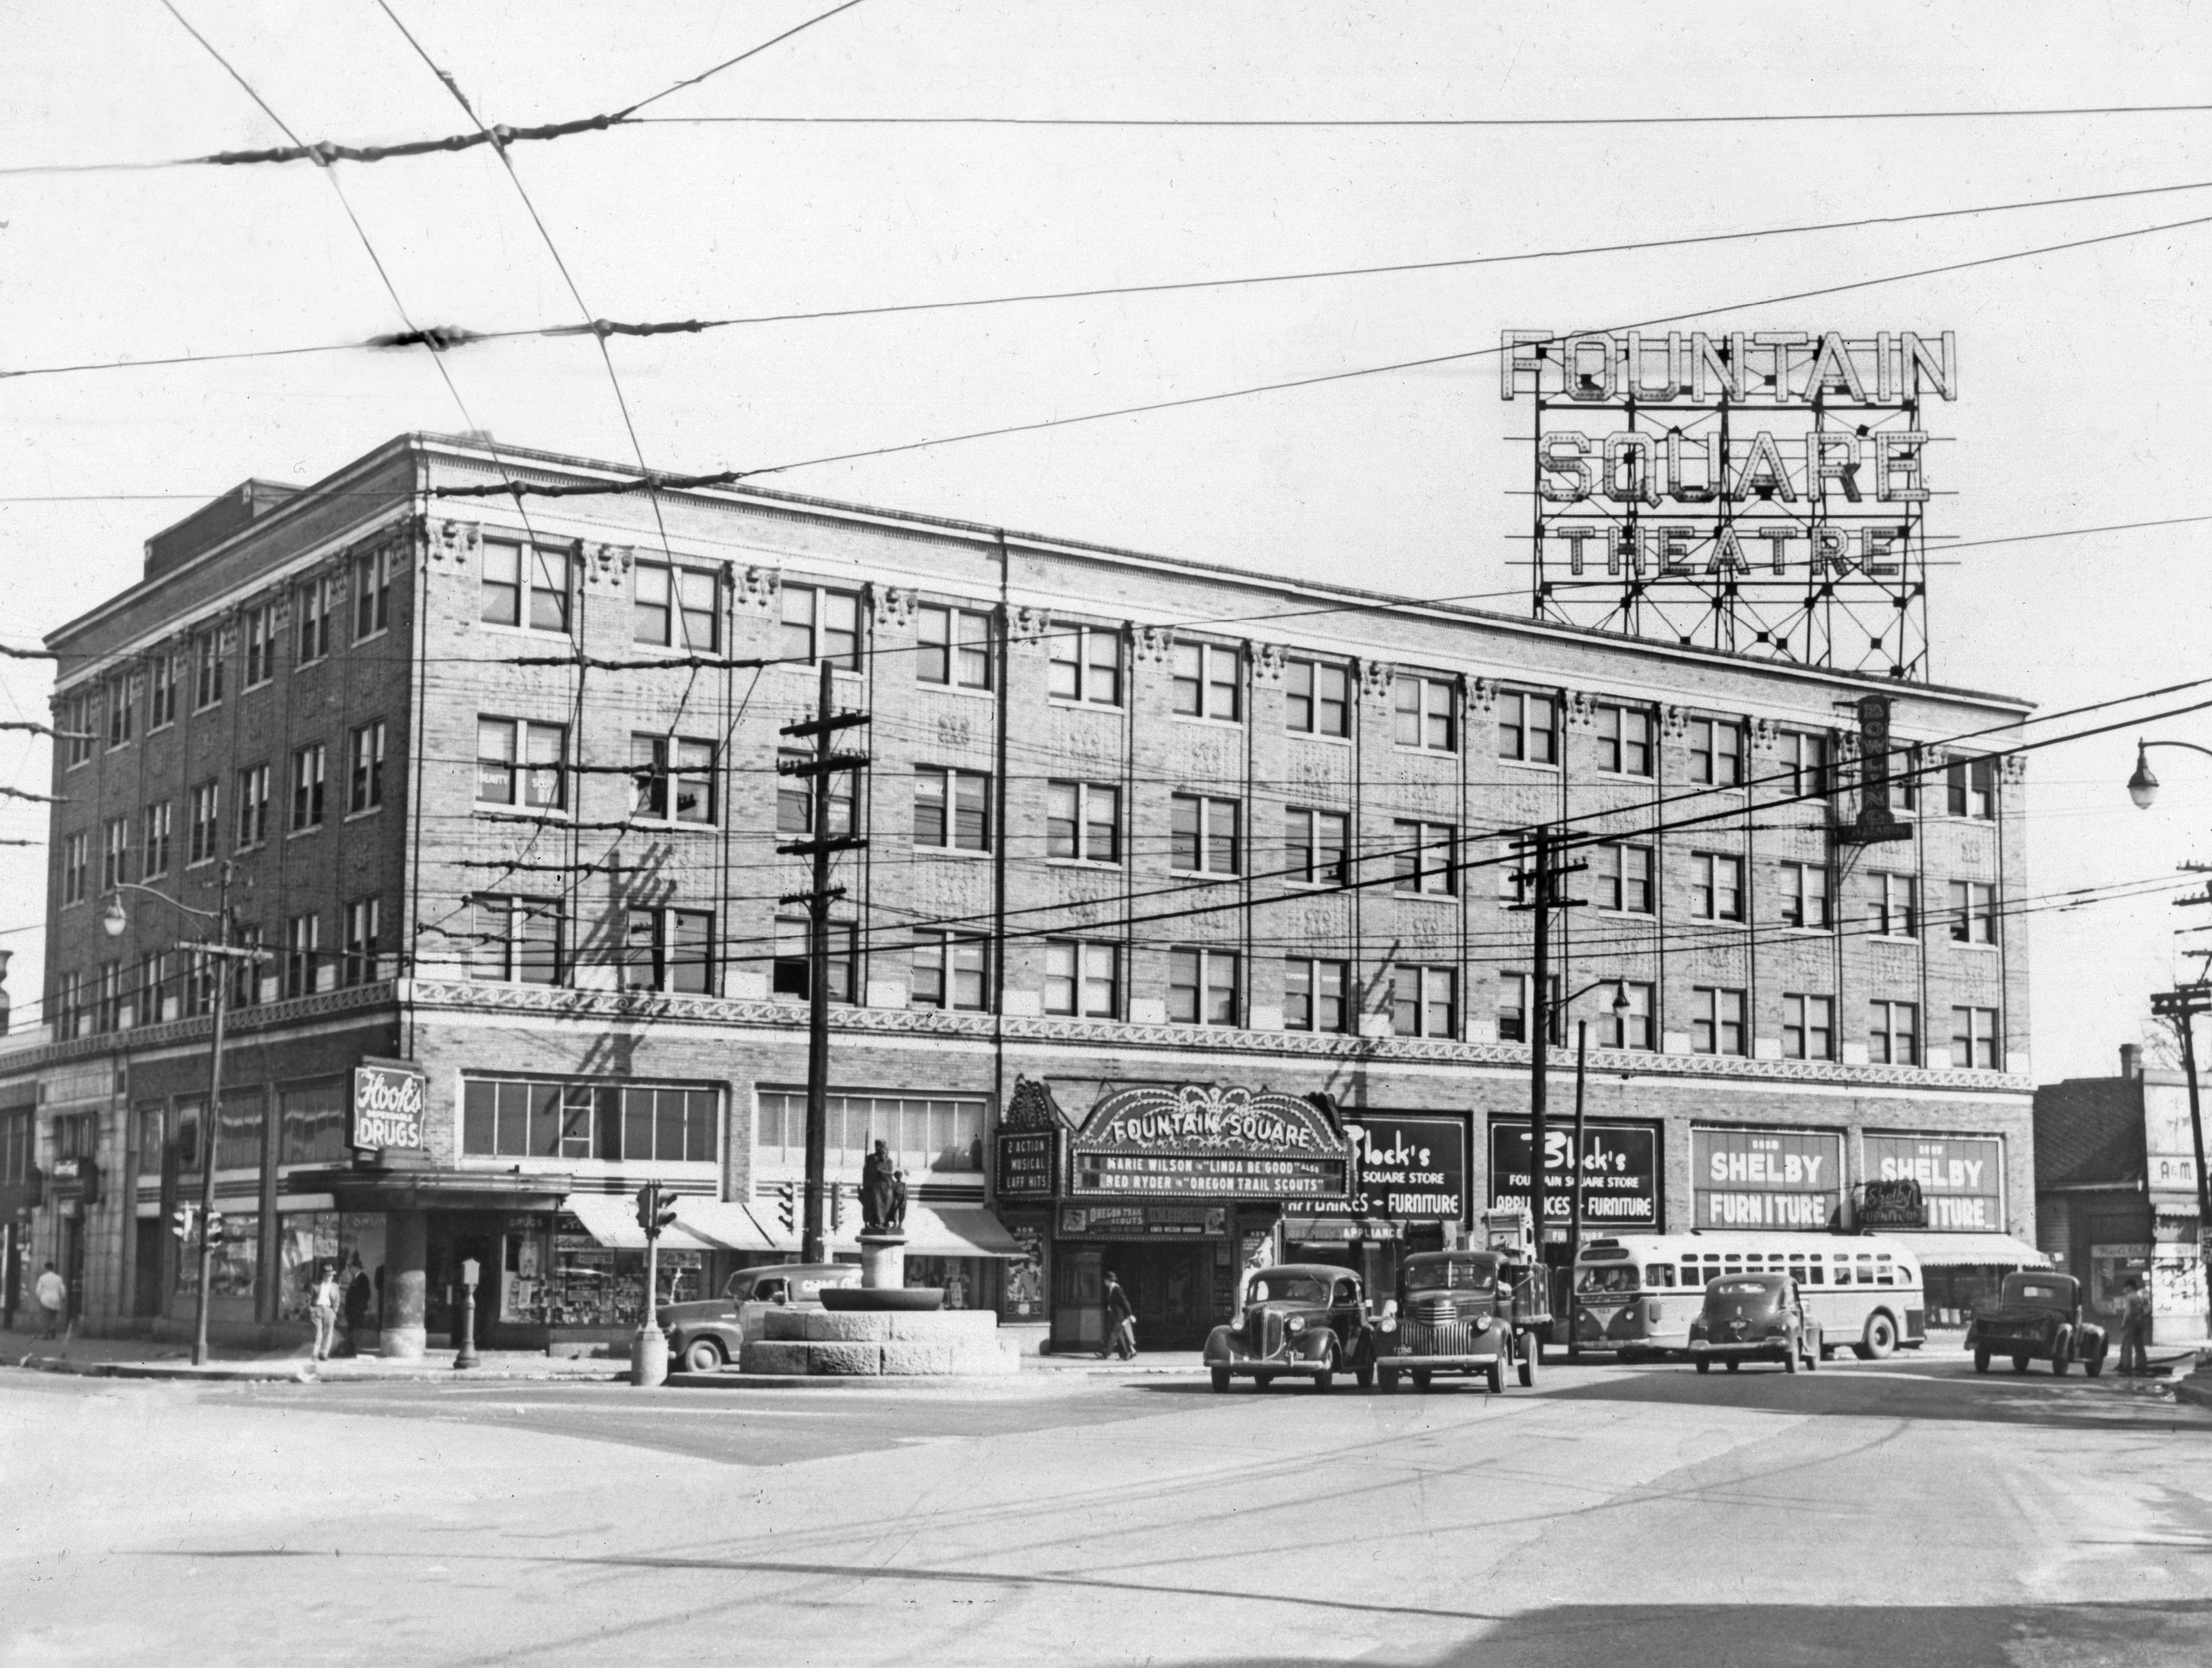 The Fountain Square Theatre was the focal point of the southeastside neighborhood. Streetcar cables can be seen at the intersection of Virginia Avenue, Shelby and Prospect Streets in 1947.